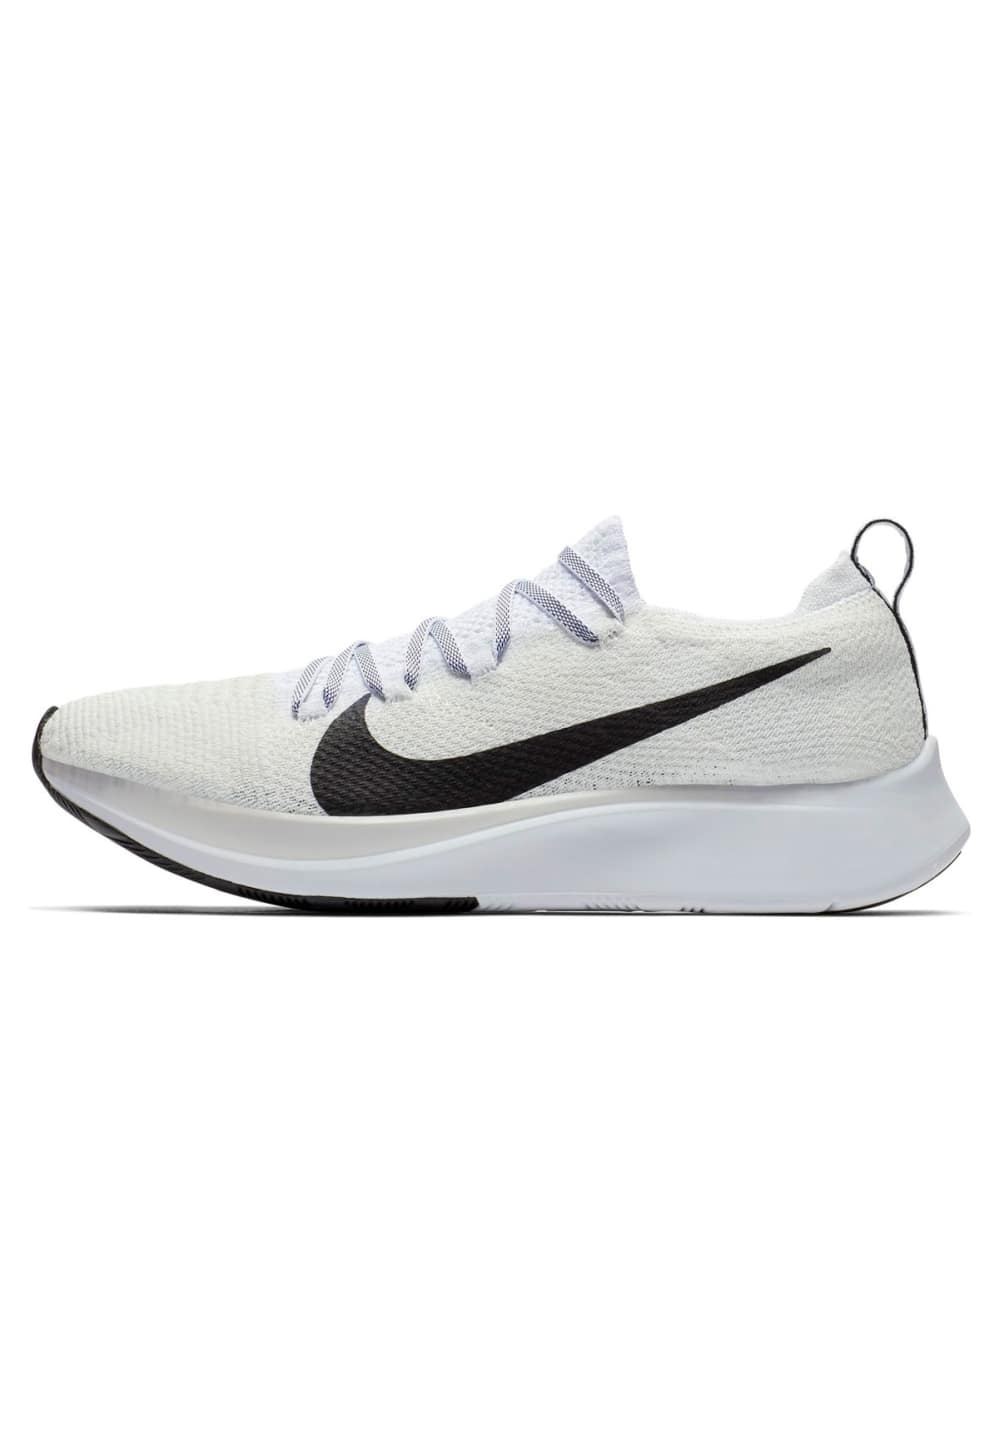 Nike Zoom Fly Flyknit - Running shoes for Women - White  3c132d27a